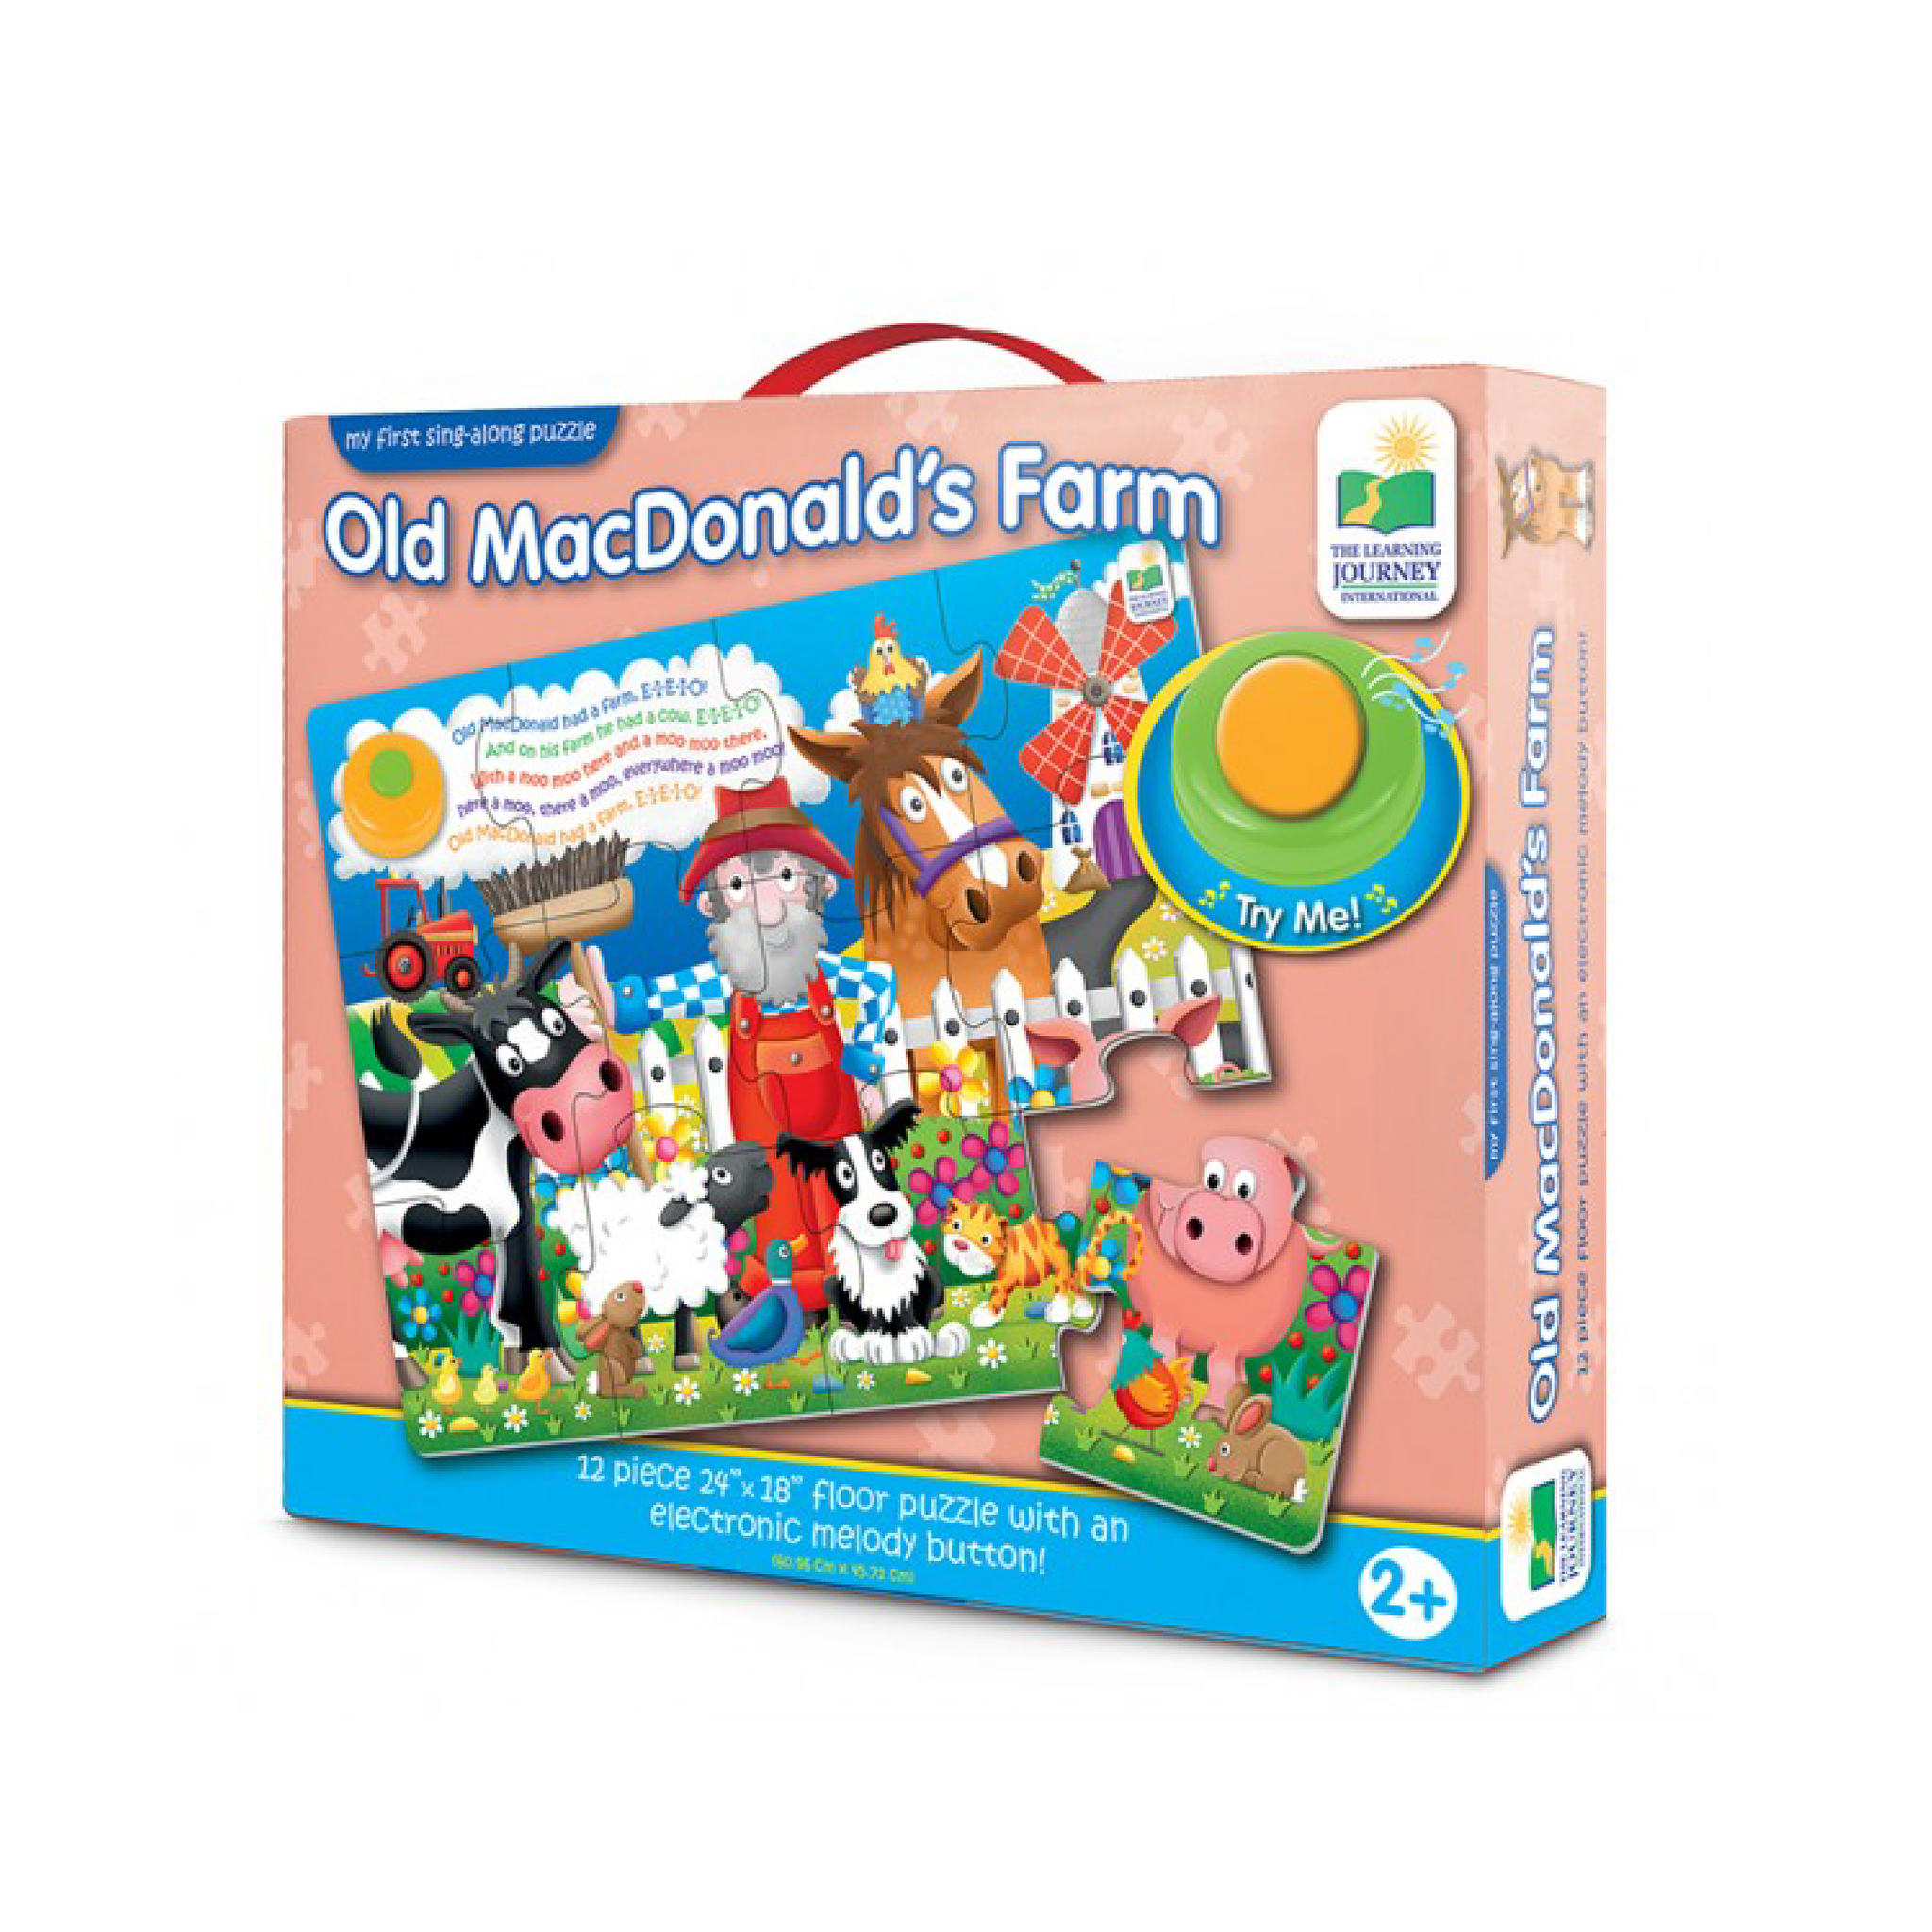 My First Sing Along Puzzle Old MacDonald | Toy Galeria